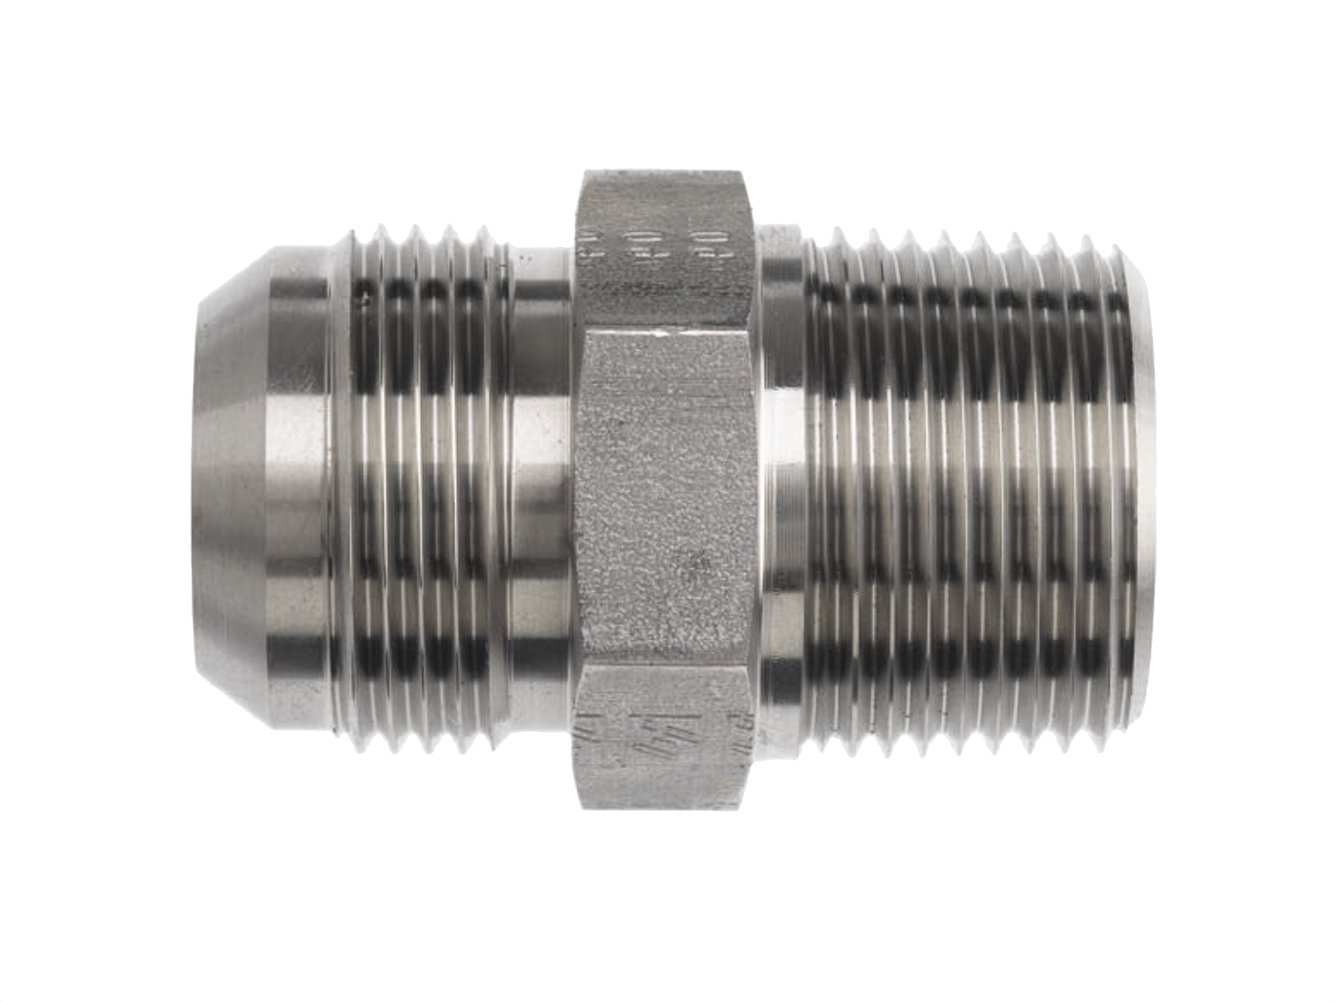 16MJ-12MP Adapter Brennan 2404-16-12-SS Stainless Steel JIC Tube Fitting 1 Tube OD x 3//4-14 NPTF Male